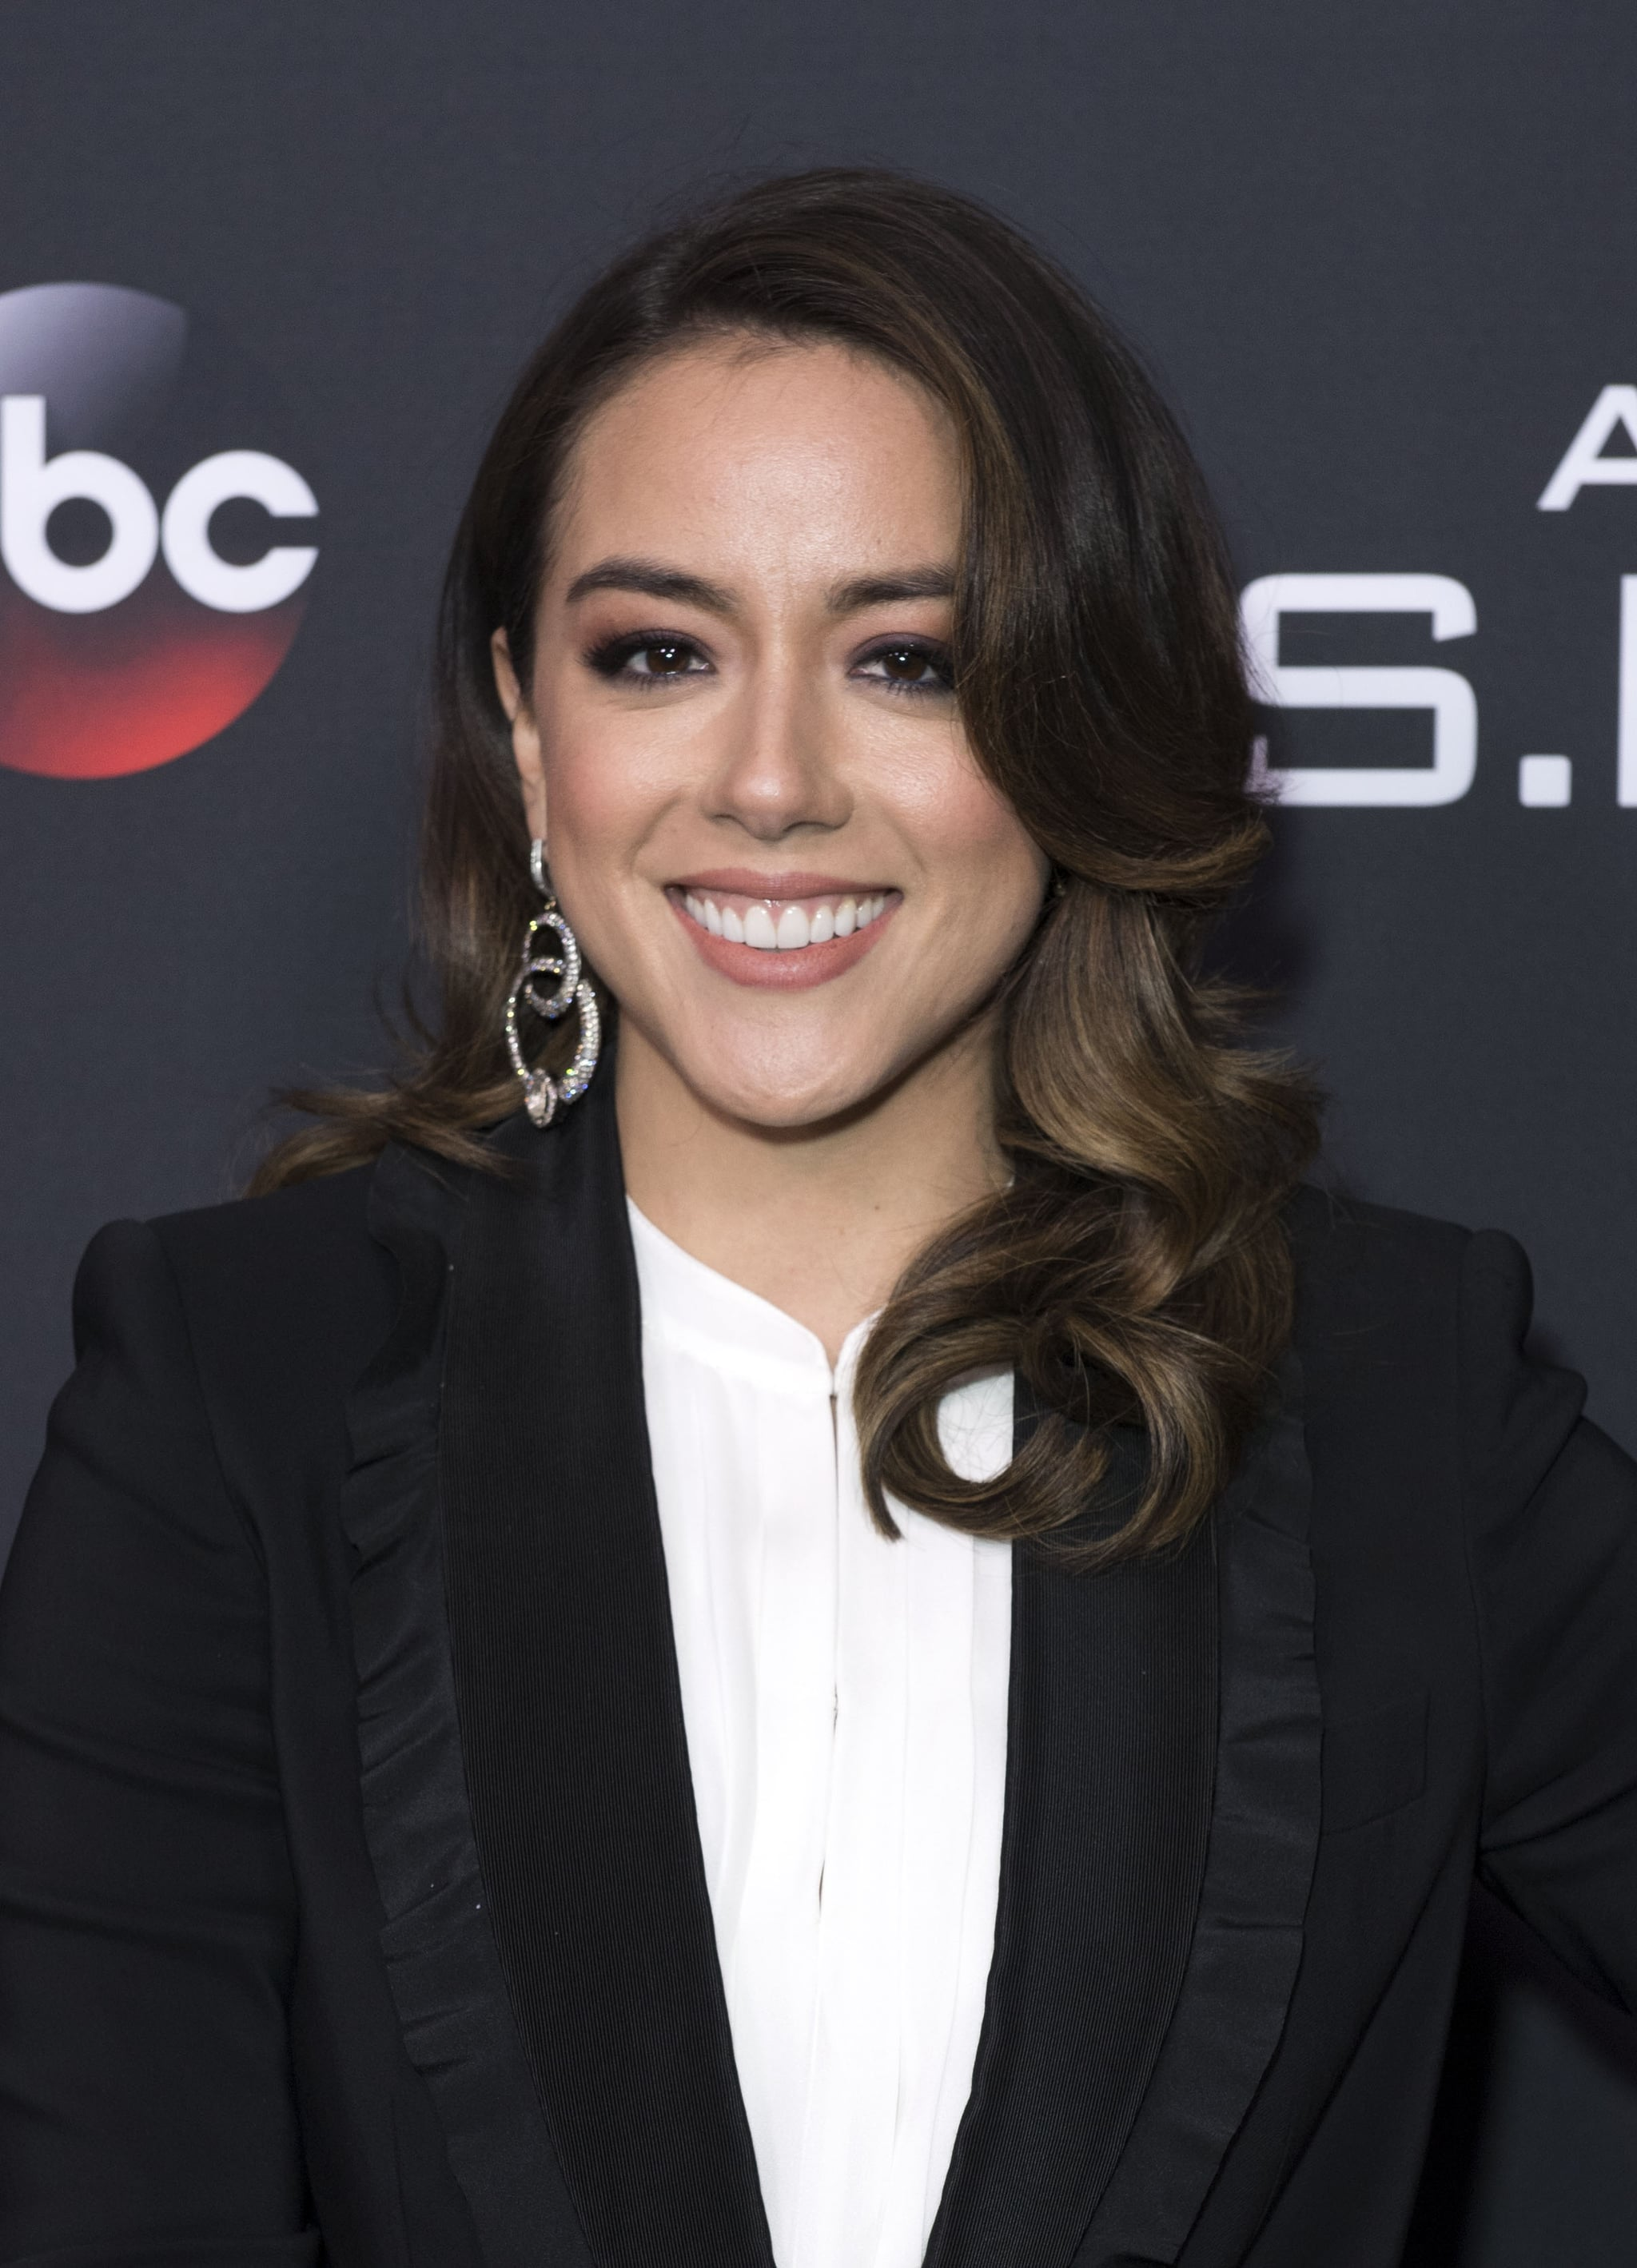 Actress Chloe Bennet attends Marvel's Agents of S.H.I.E.L.D. 100th Episode Celebration in Hollywood, California, on February 24, 2018.  / AFP PHOTO / VALERIE MACON        (Photo credit should read VALERIE MACON/AFP/Getty Images)